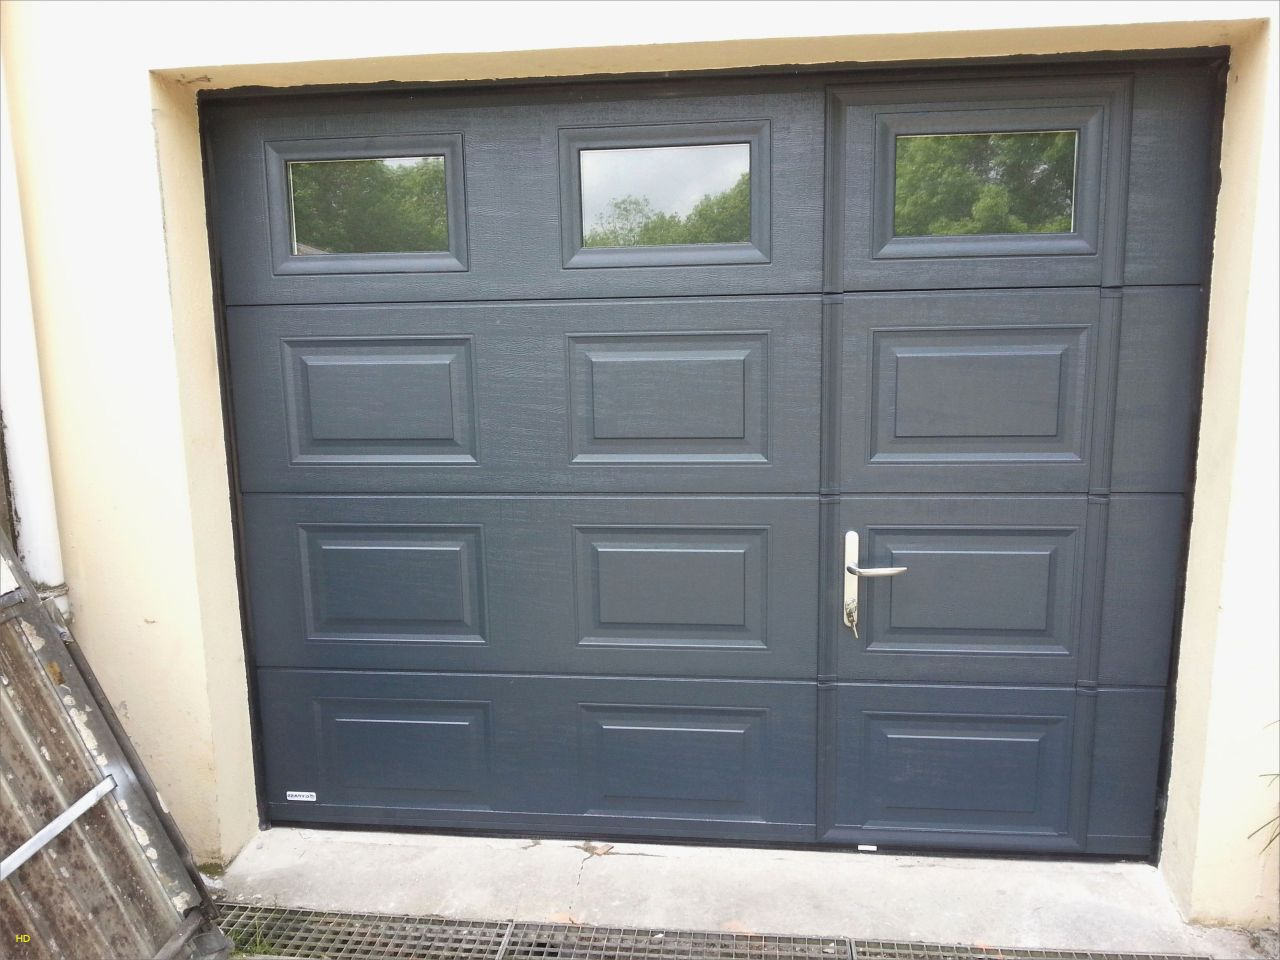 Epingle Par Kilromiche Romy Sur Bricolage En 2020 Porte Garage Porte De Garage Sectionnelle Isolation Porte